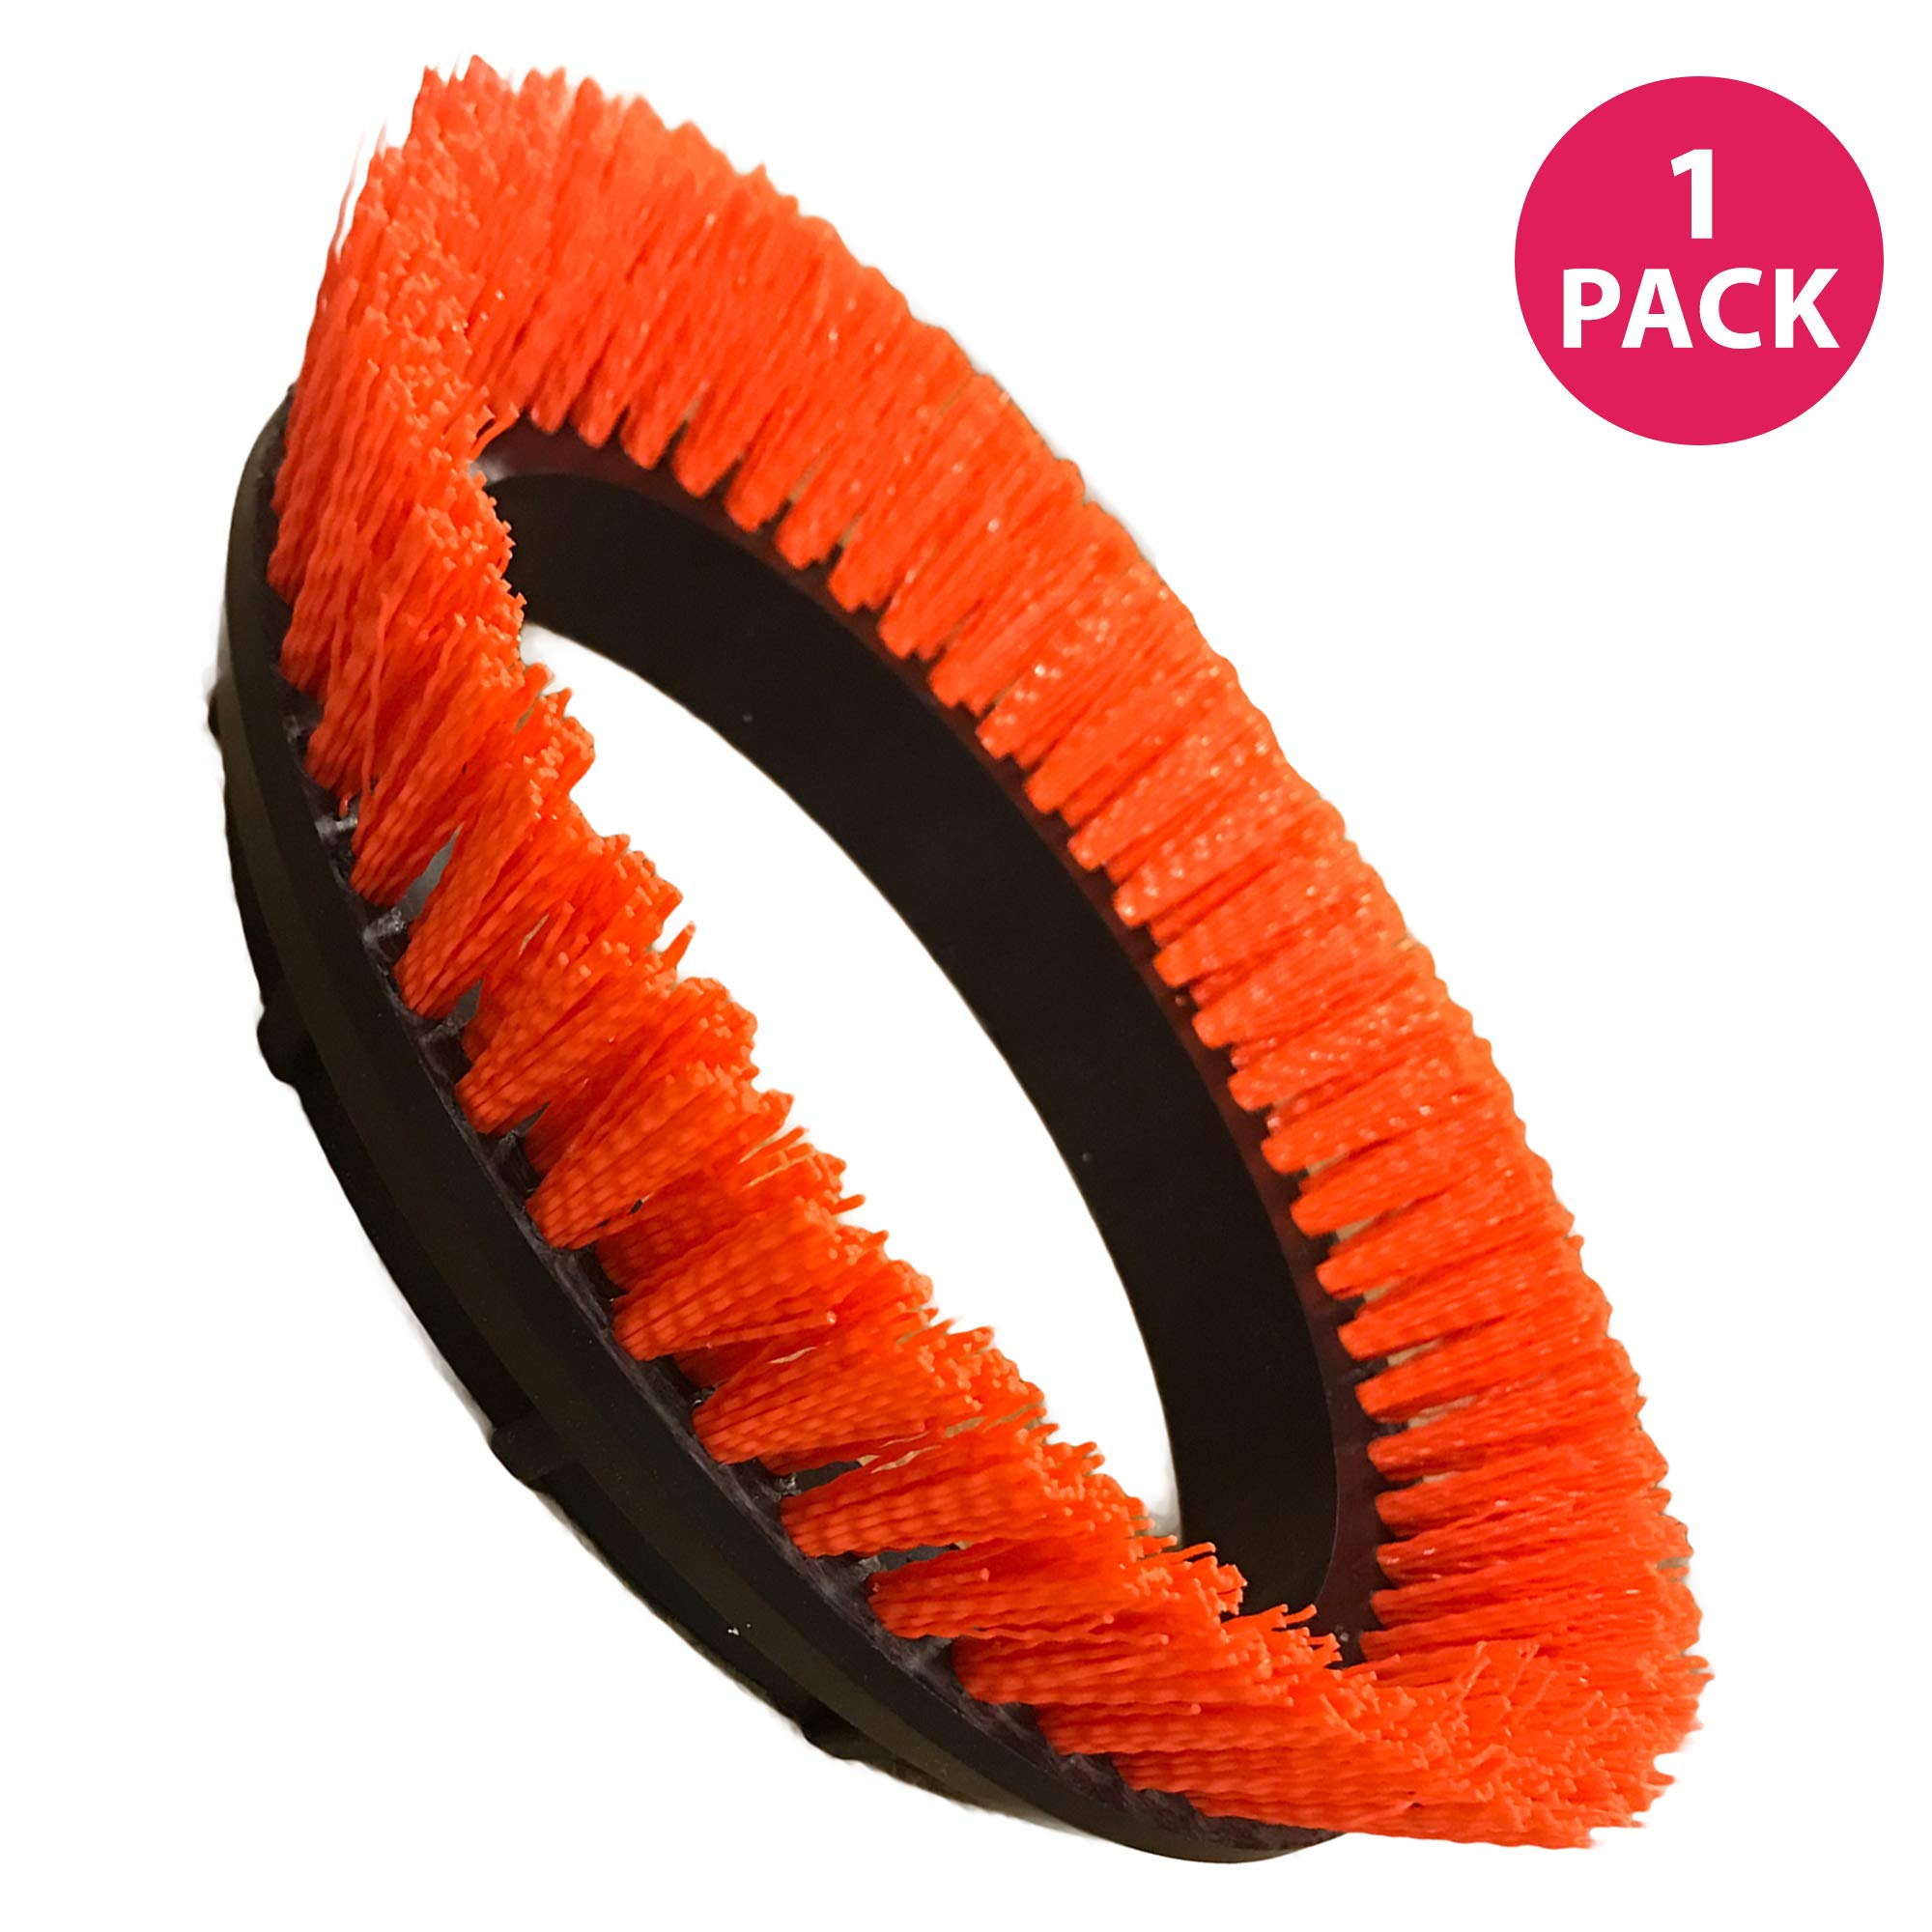 Think Crucial Replacement Crimped Polypropylene Scrub Orbiter Brush for Oreck Commercial 550MC ORB550MC Orbiter Floor Machine, 12'' Diameter, 0.028'', Replace Part # 237047, (1 Pack) by Think Crucial